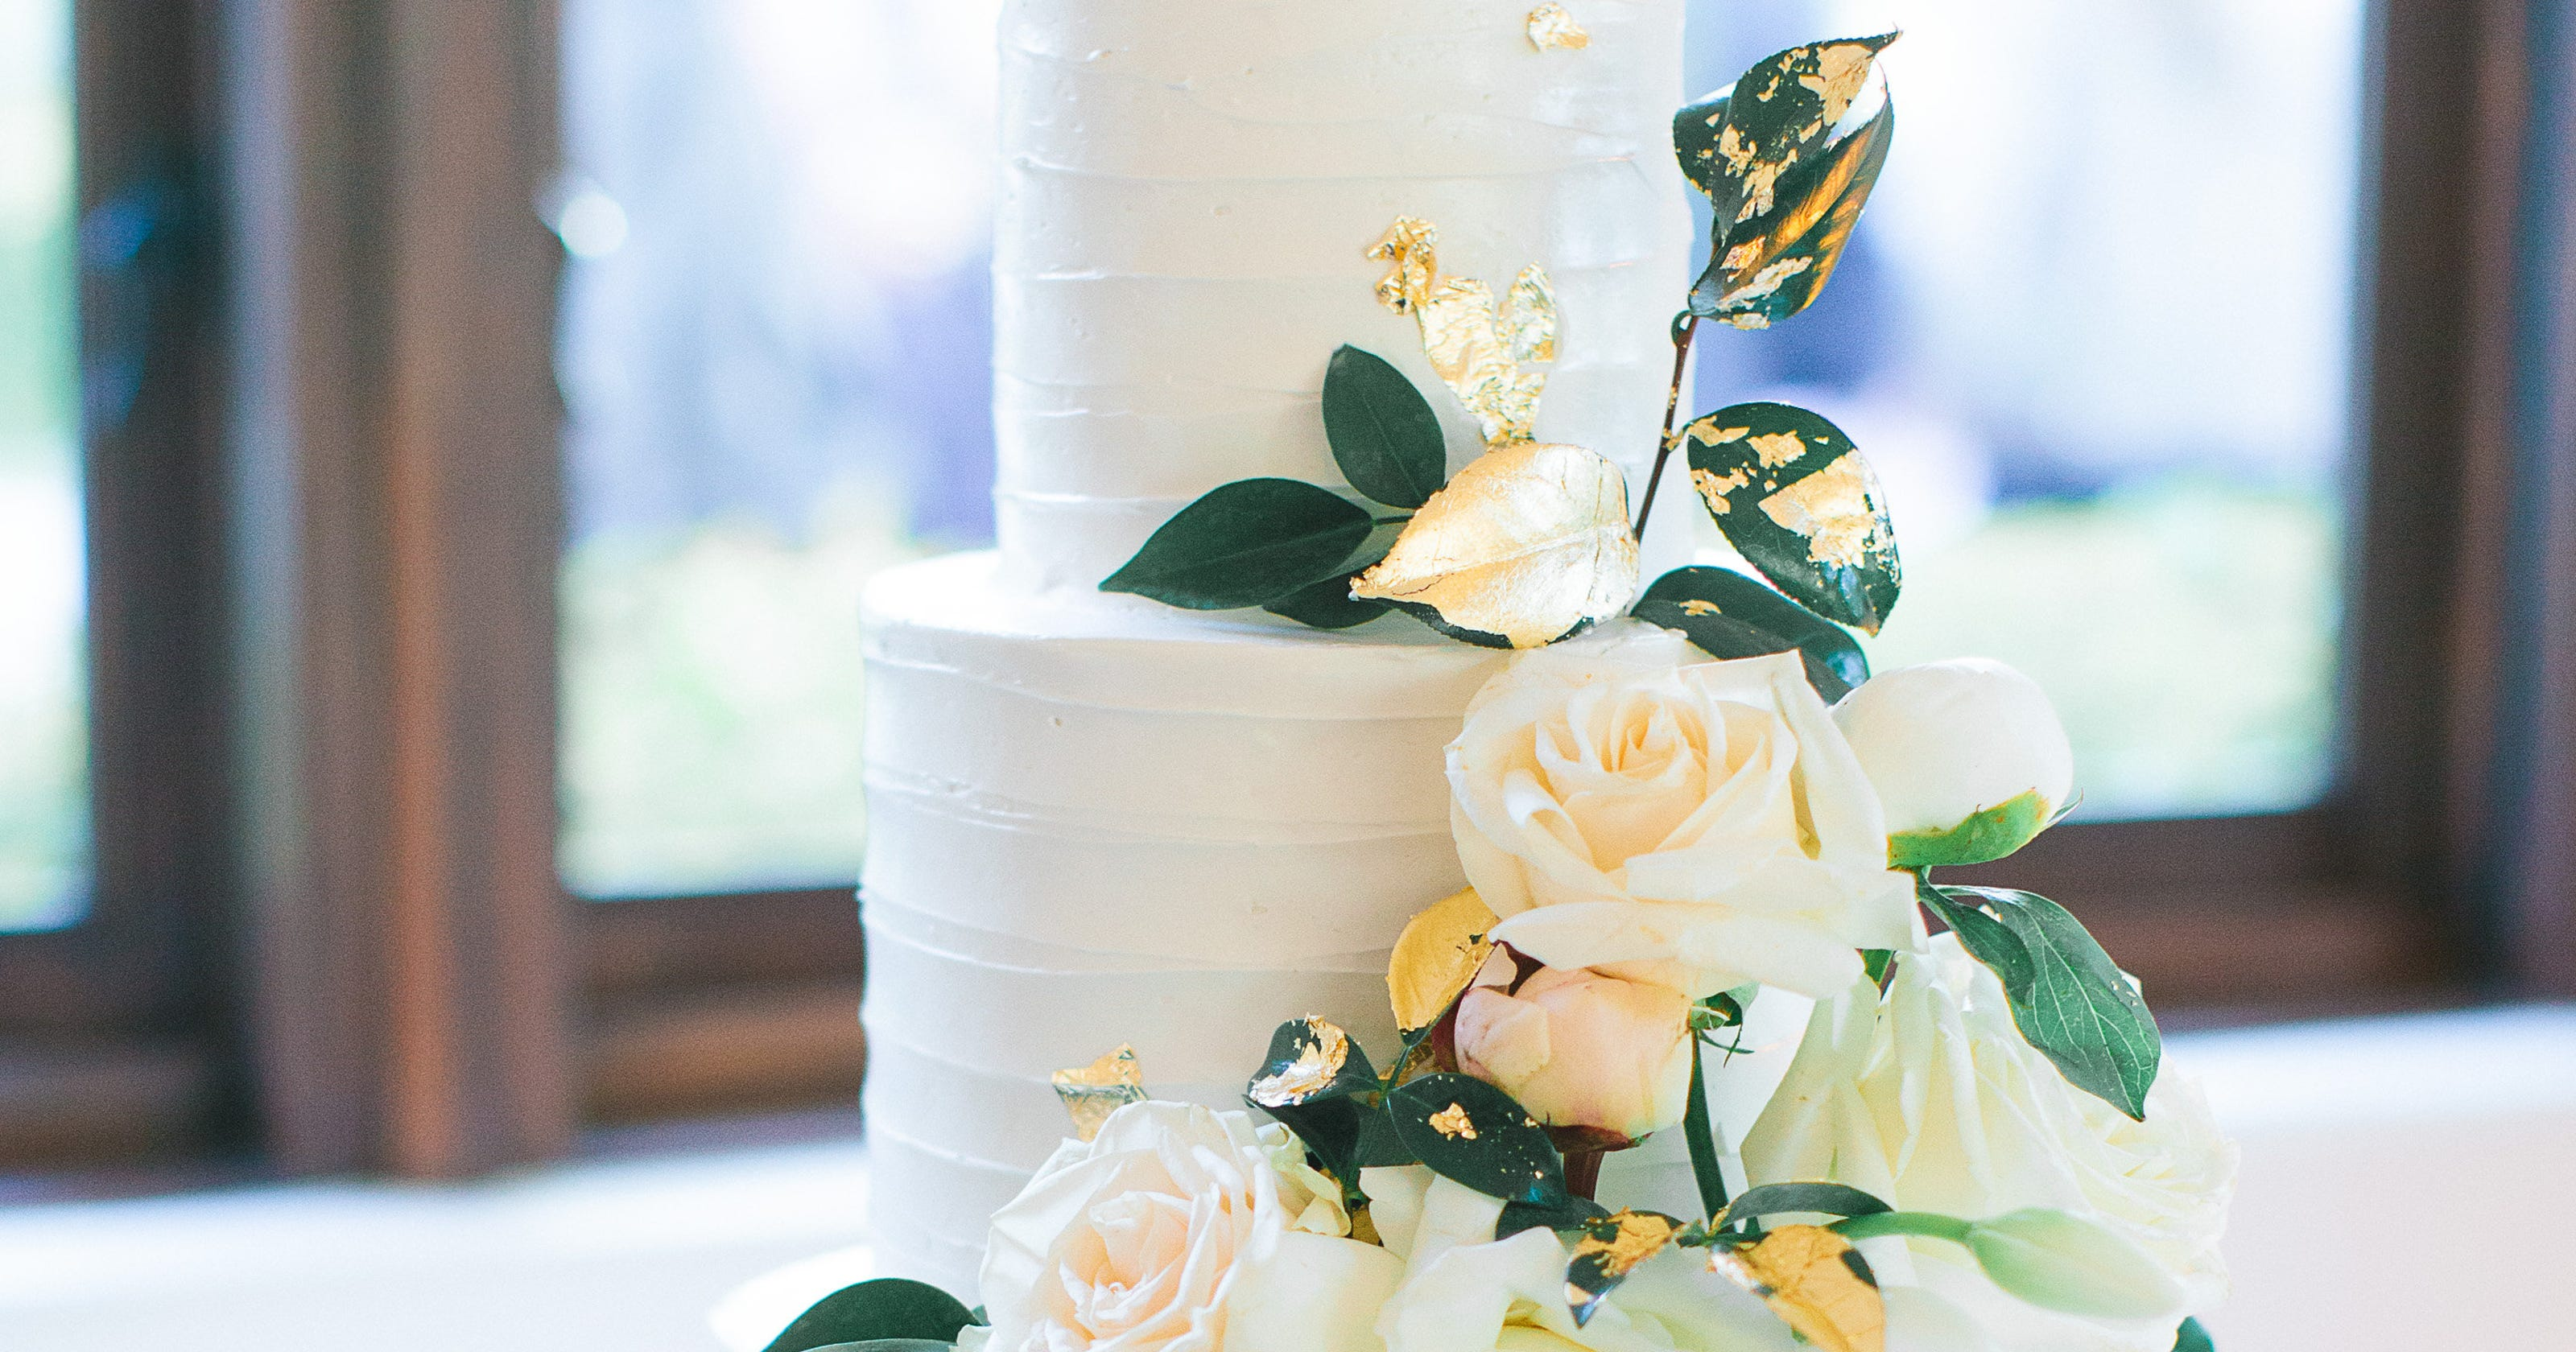 Weddings What To Give What To Avoid How Much To Spend